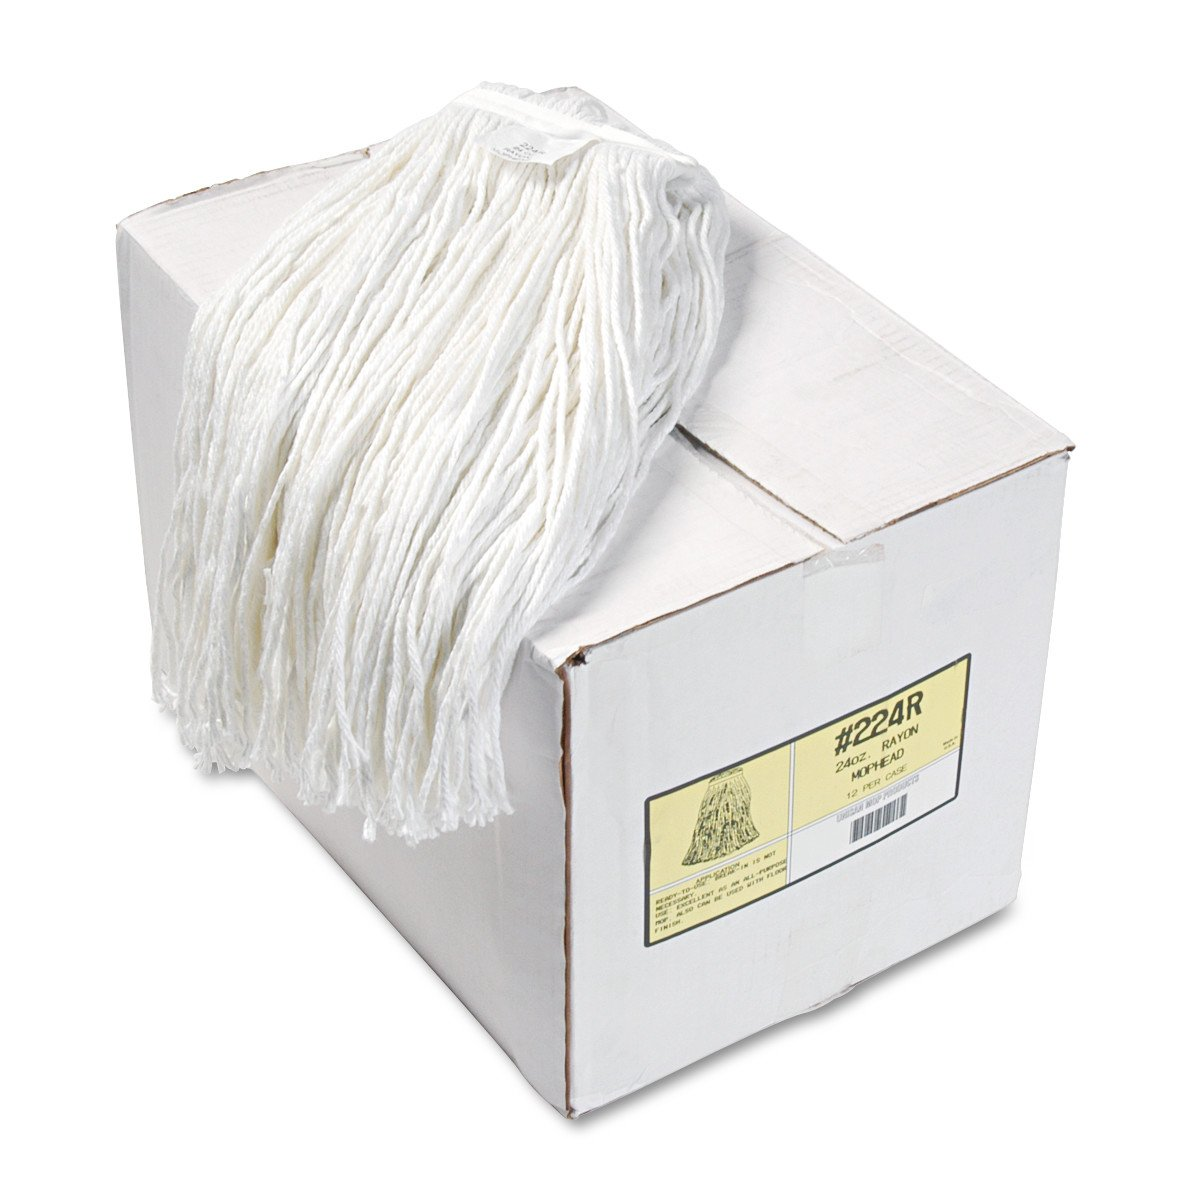 Boardwalk 224RCT Premium Cut-End Wet Mop Heads, Rayon, 24oz, White (Case of 12)